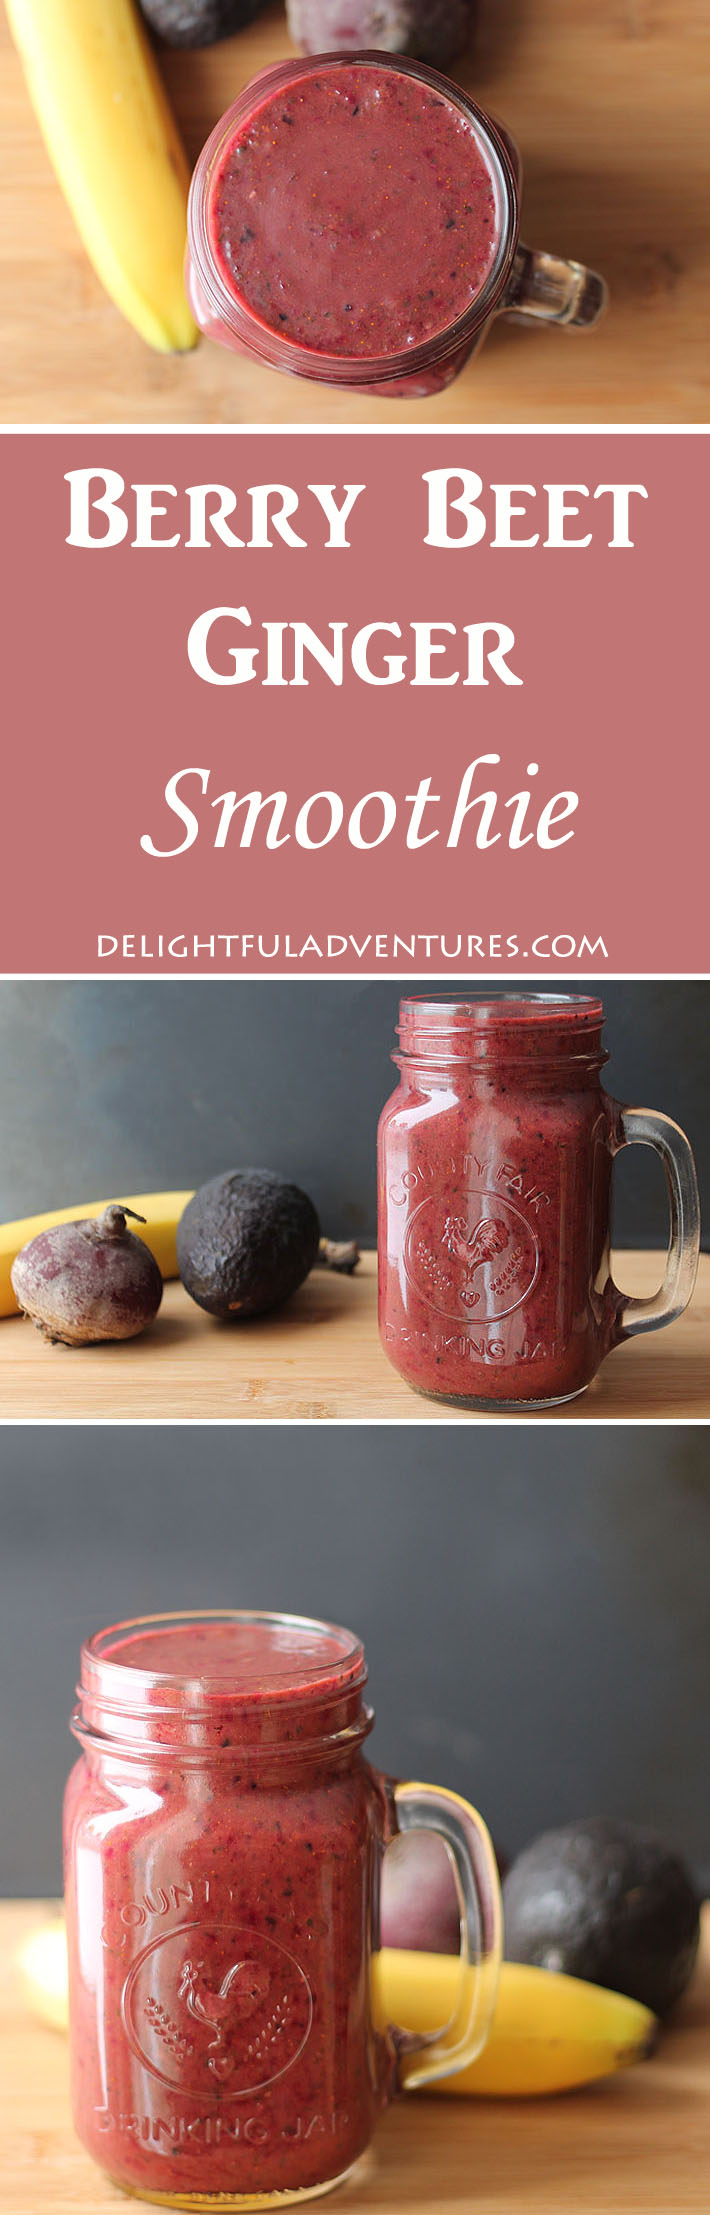 how to cut a beet for smoothie